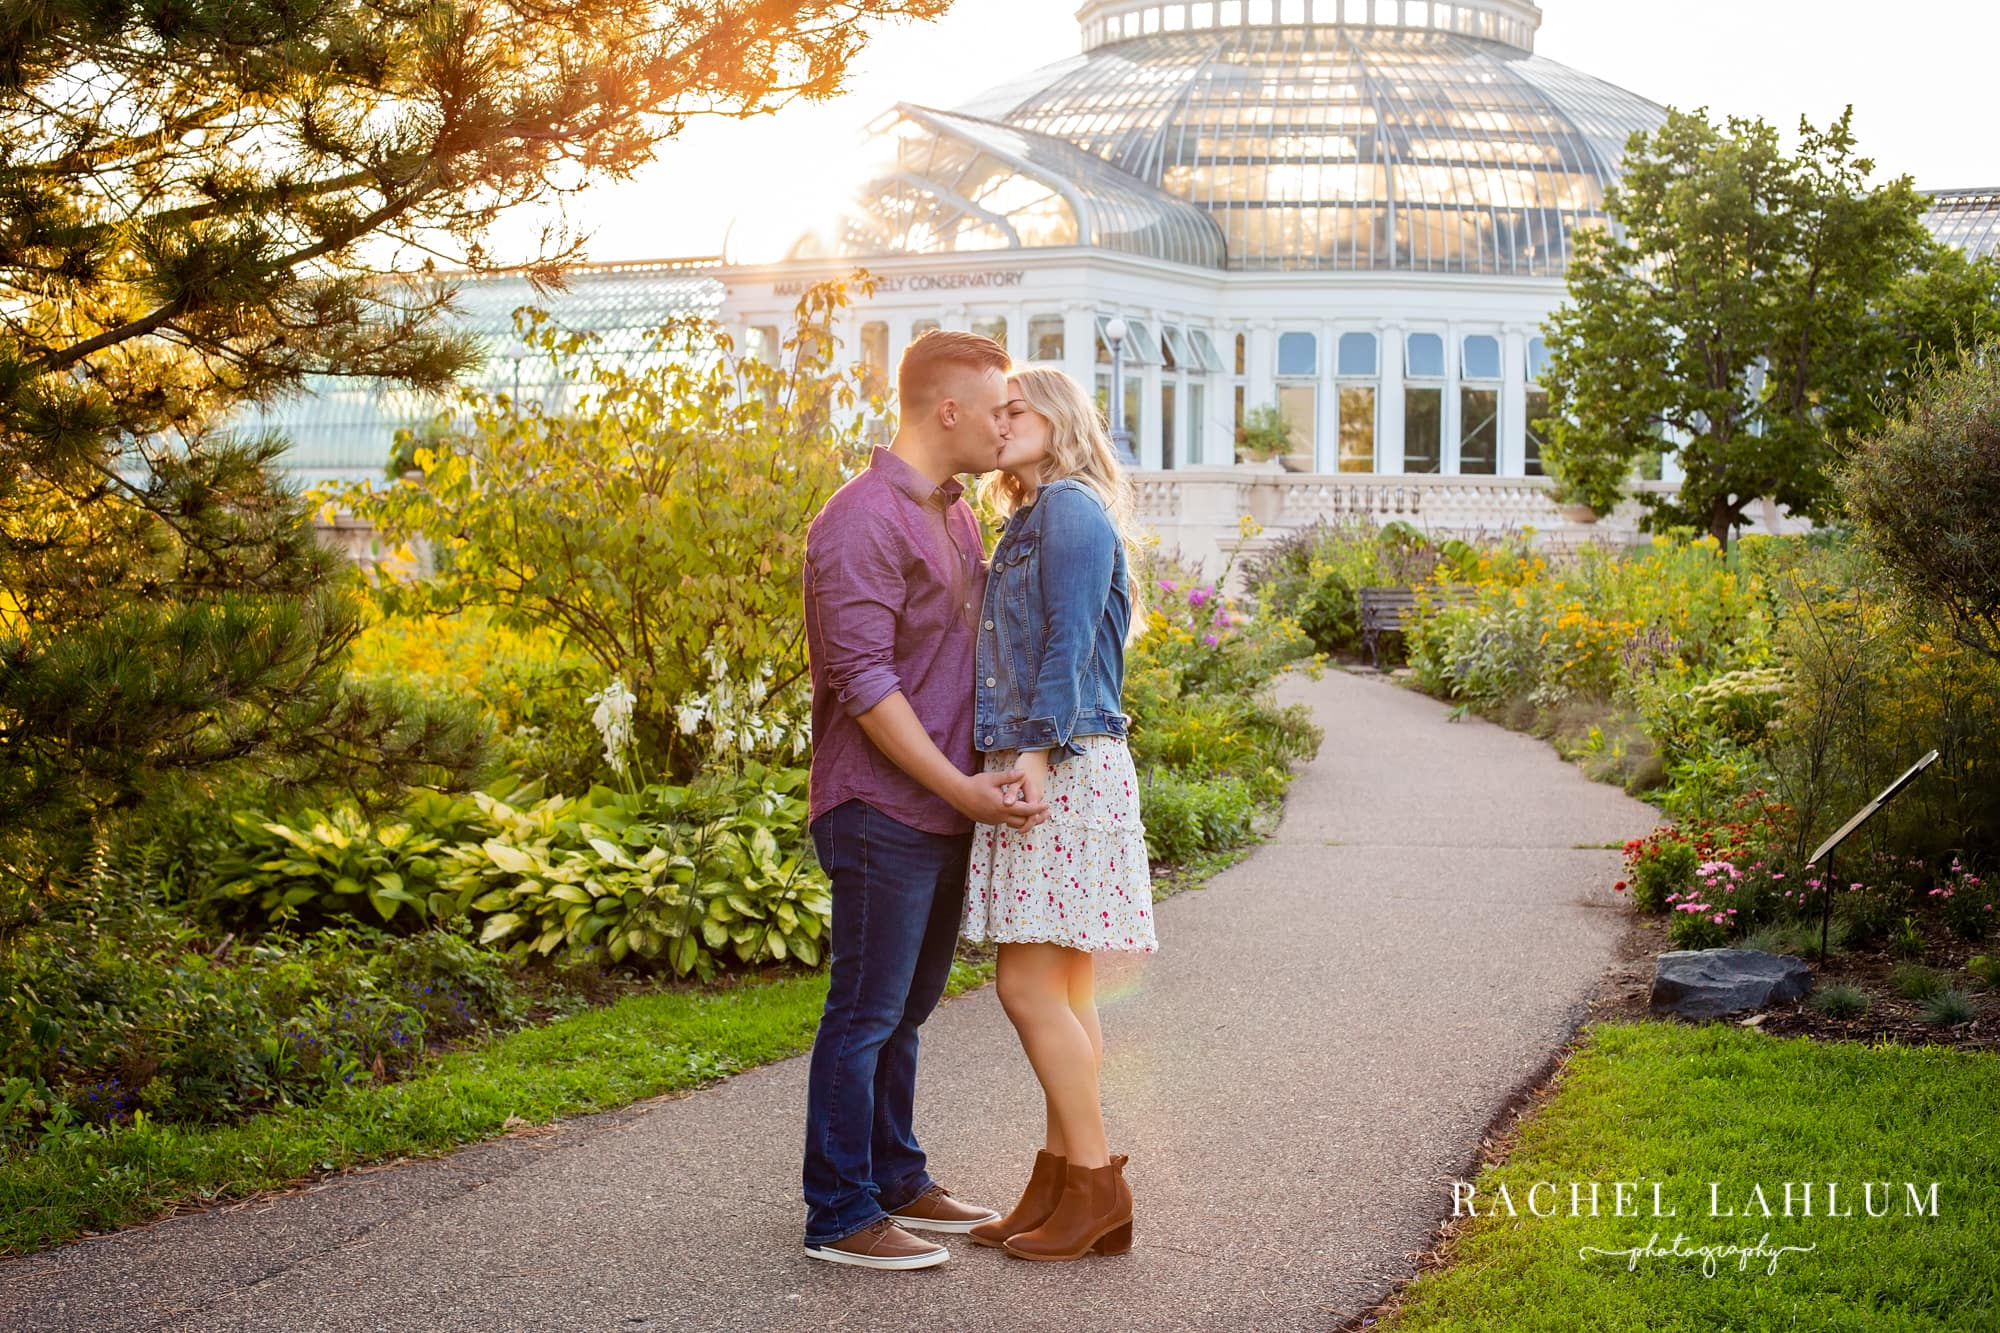 Tyler and Emily kiss during an engagement session in front of Como Conservatory.